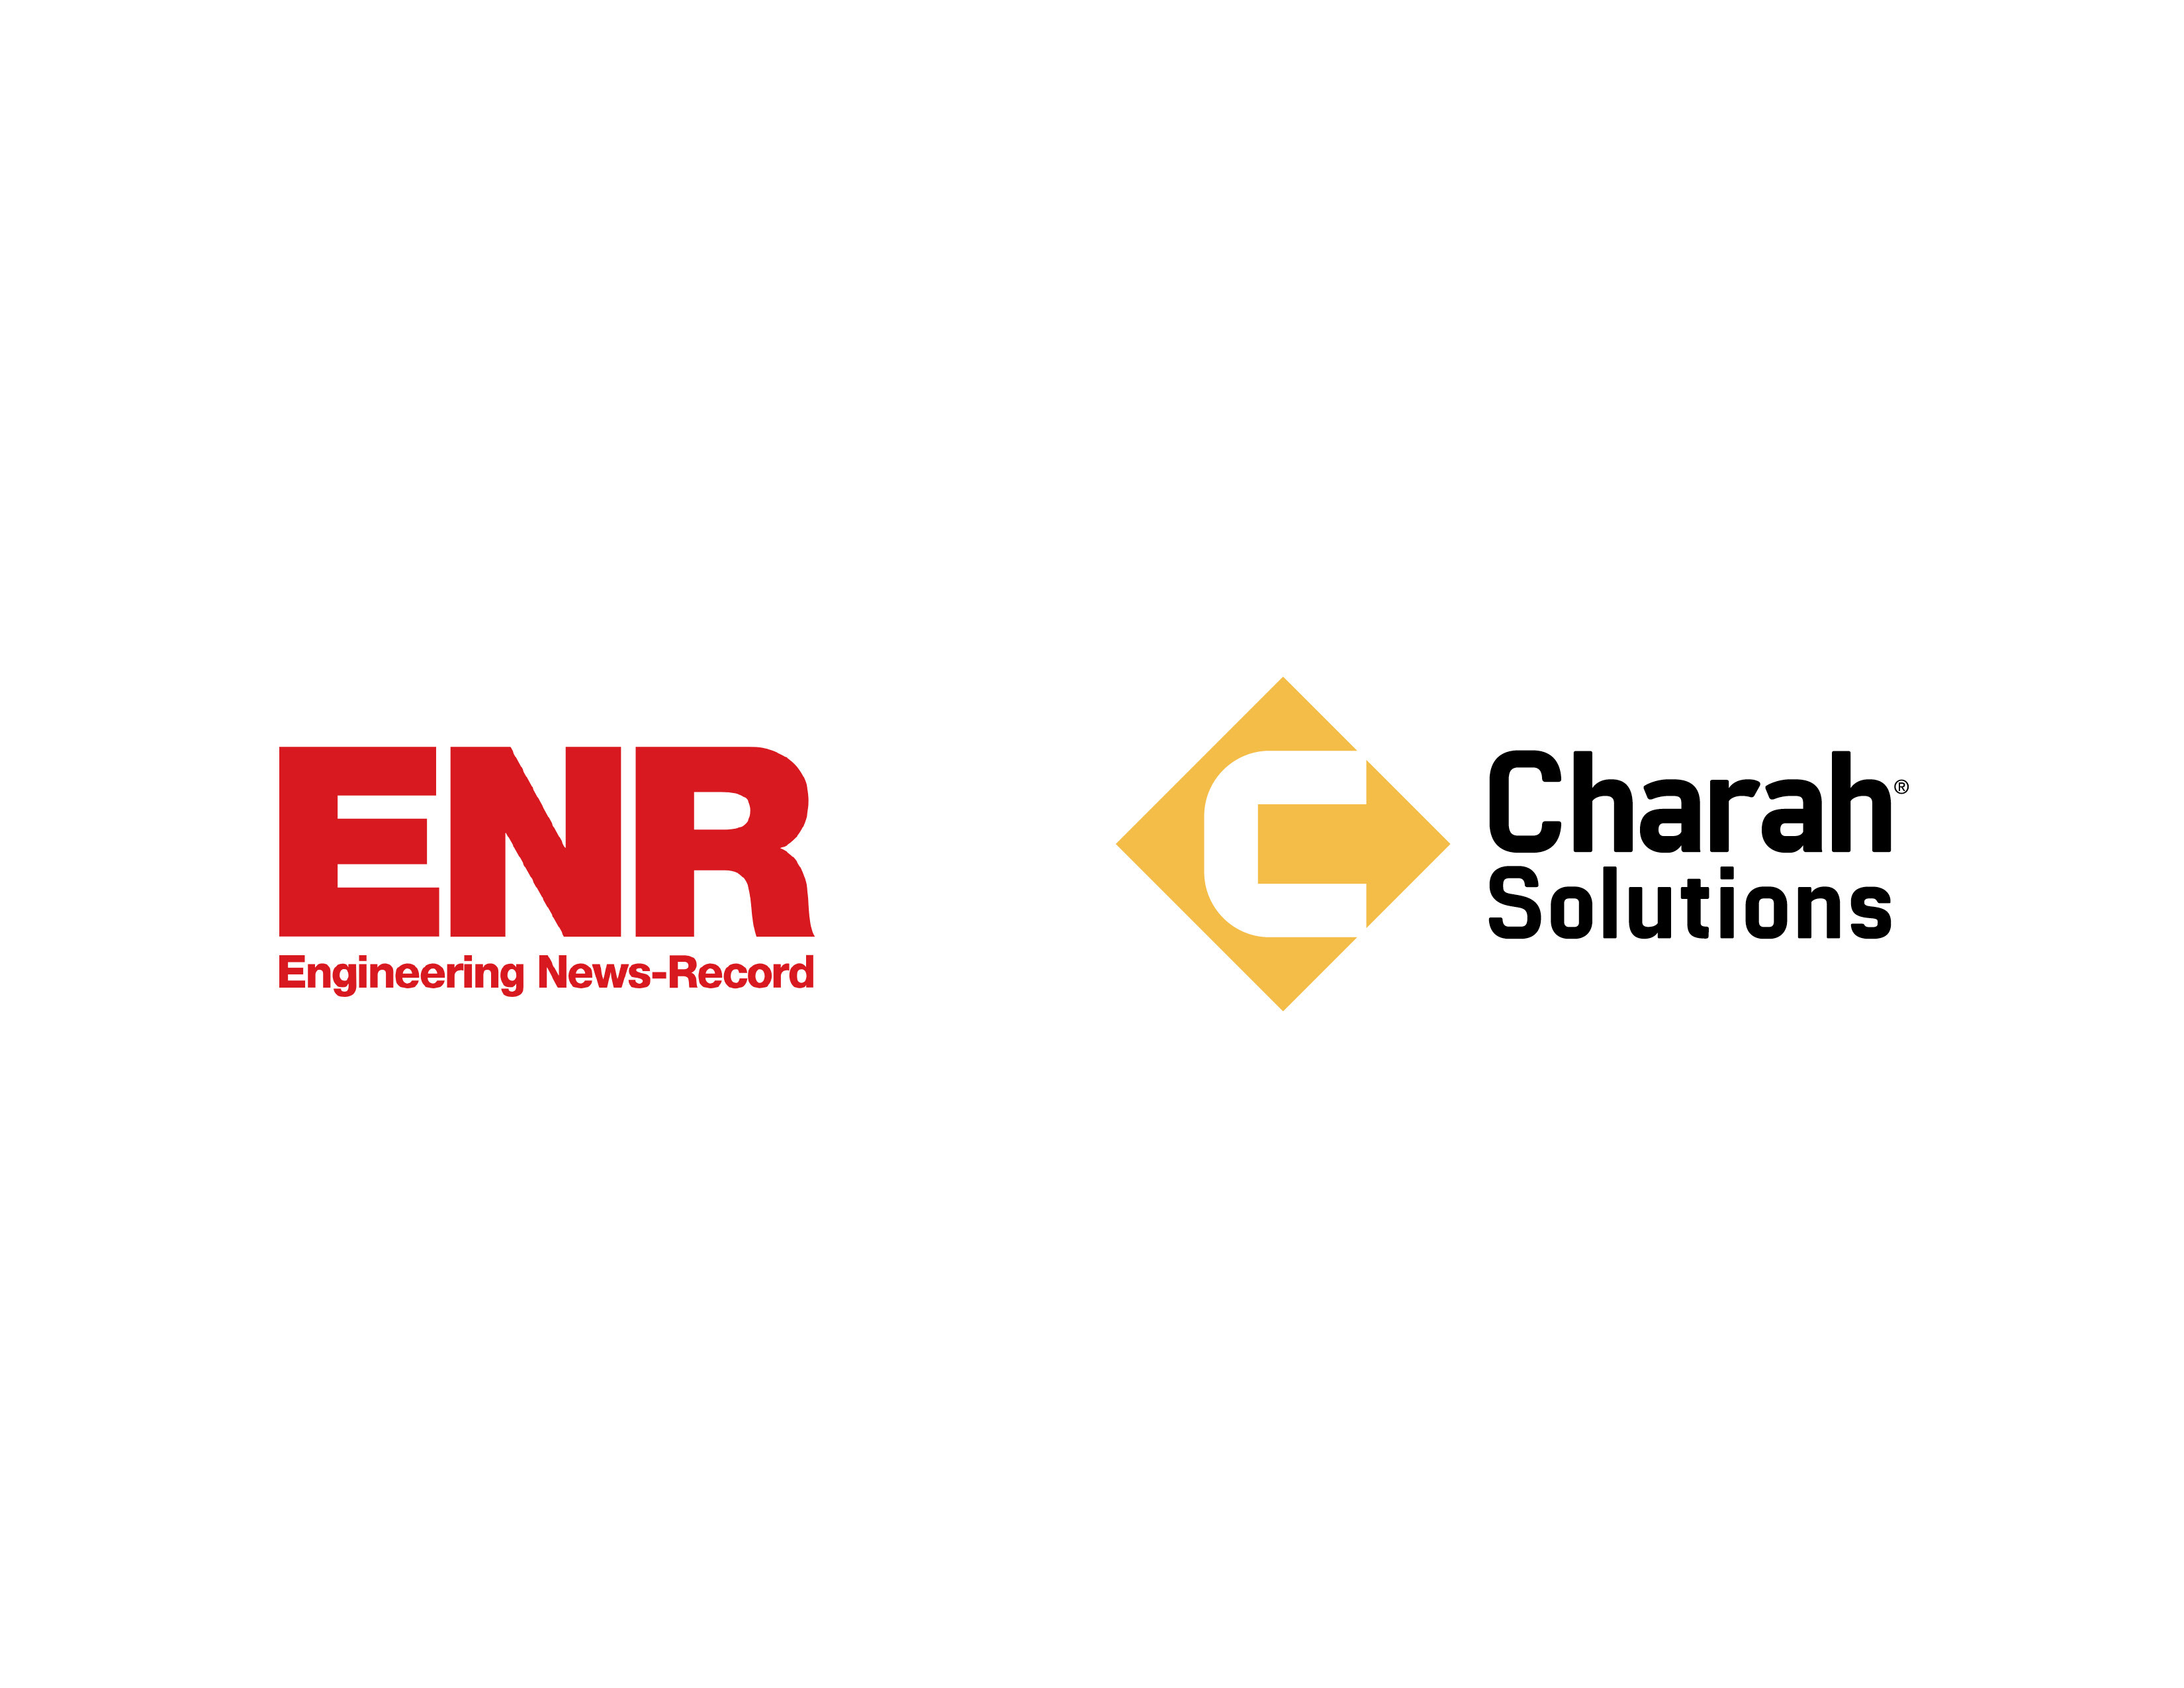 Charah Solutions Earns High Ranking in Engineering News-Record's